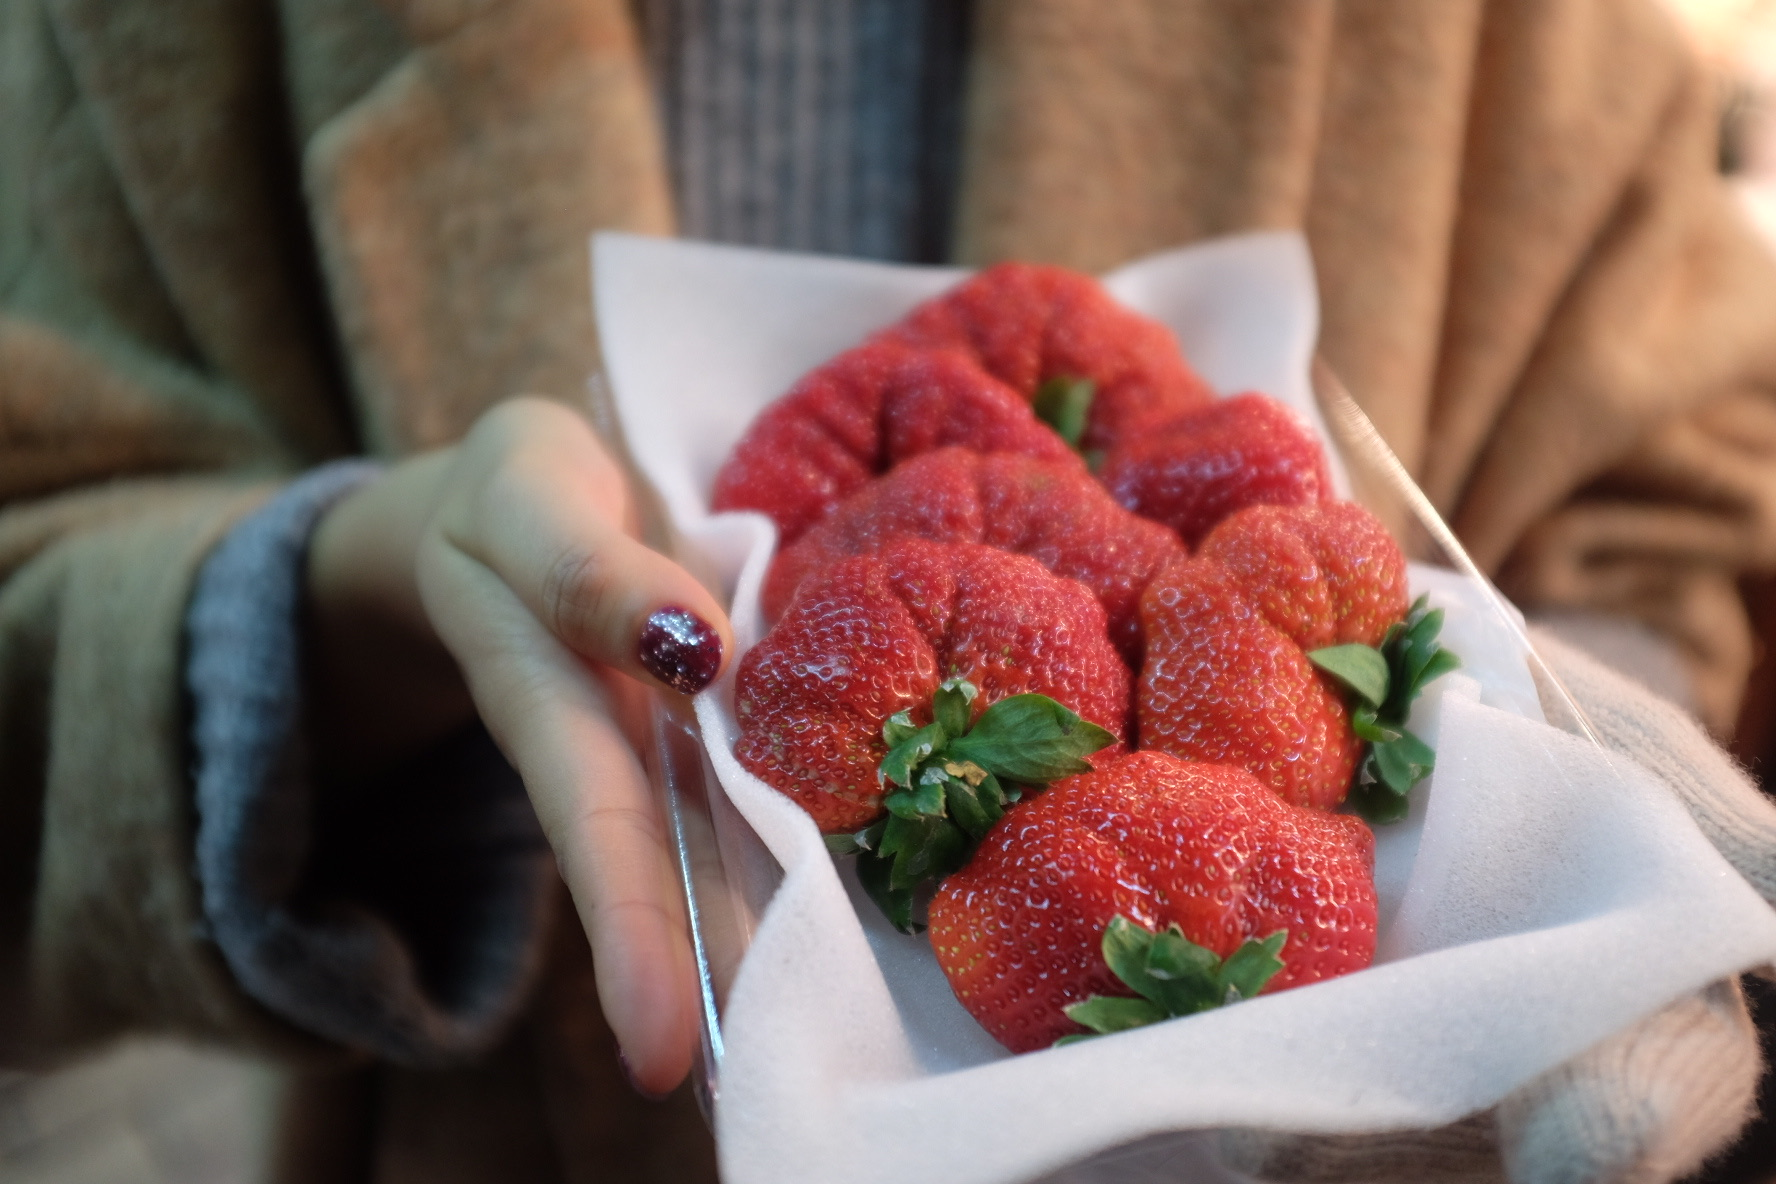 Japan's famous Kawatsura strawberries.